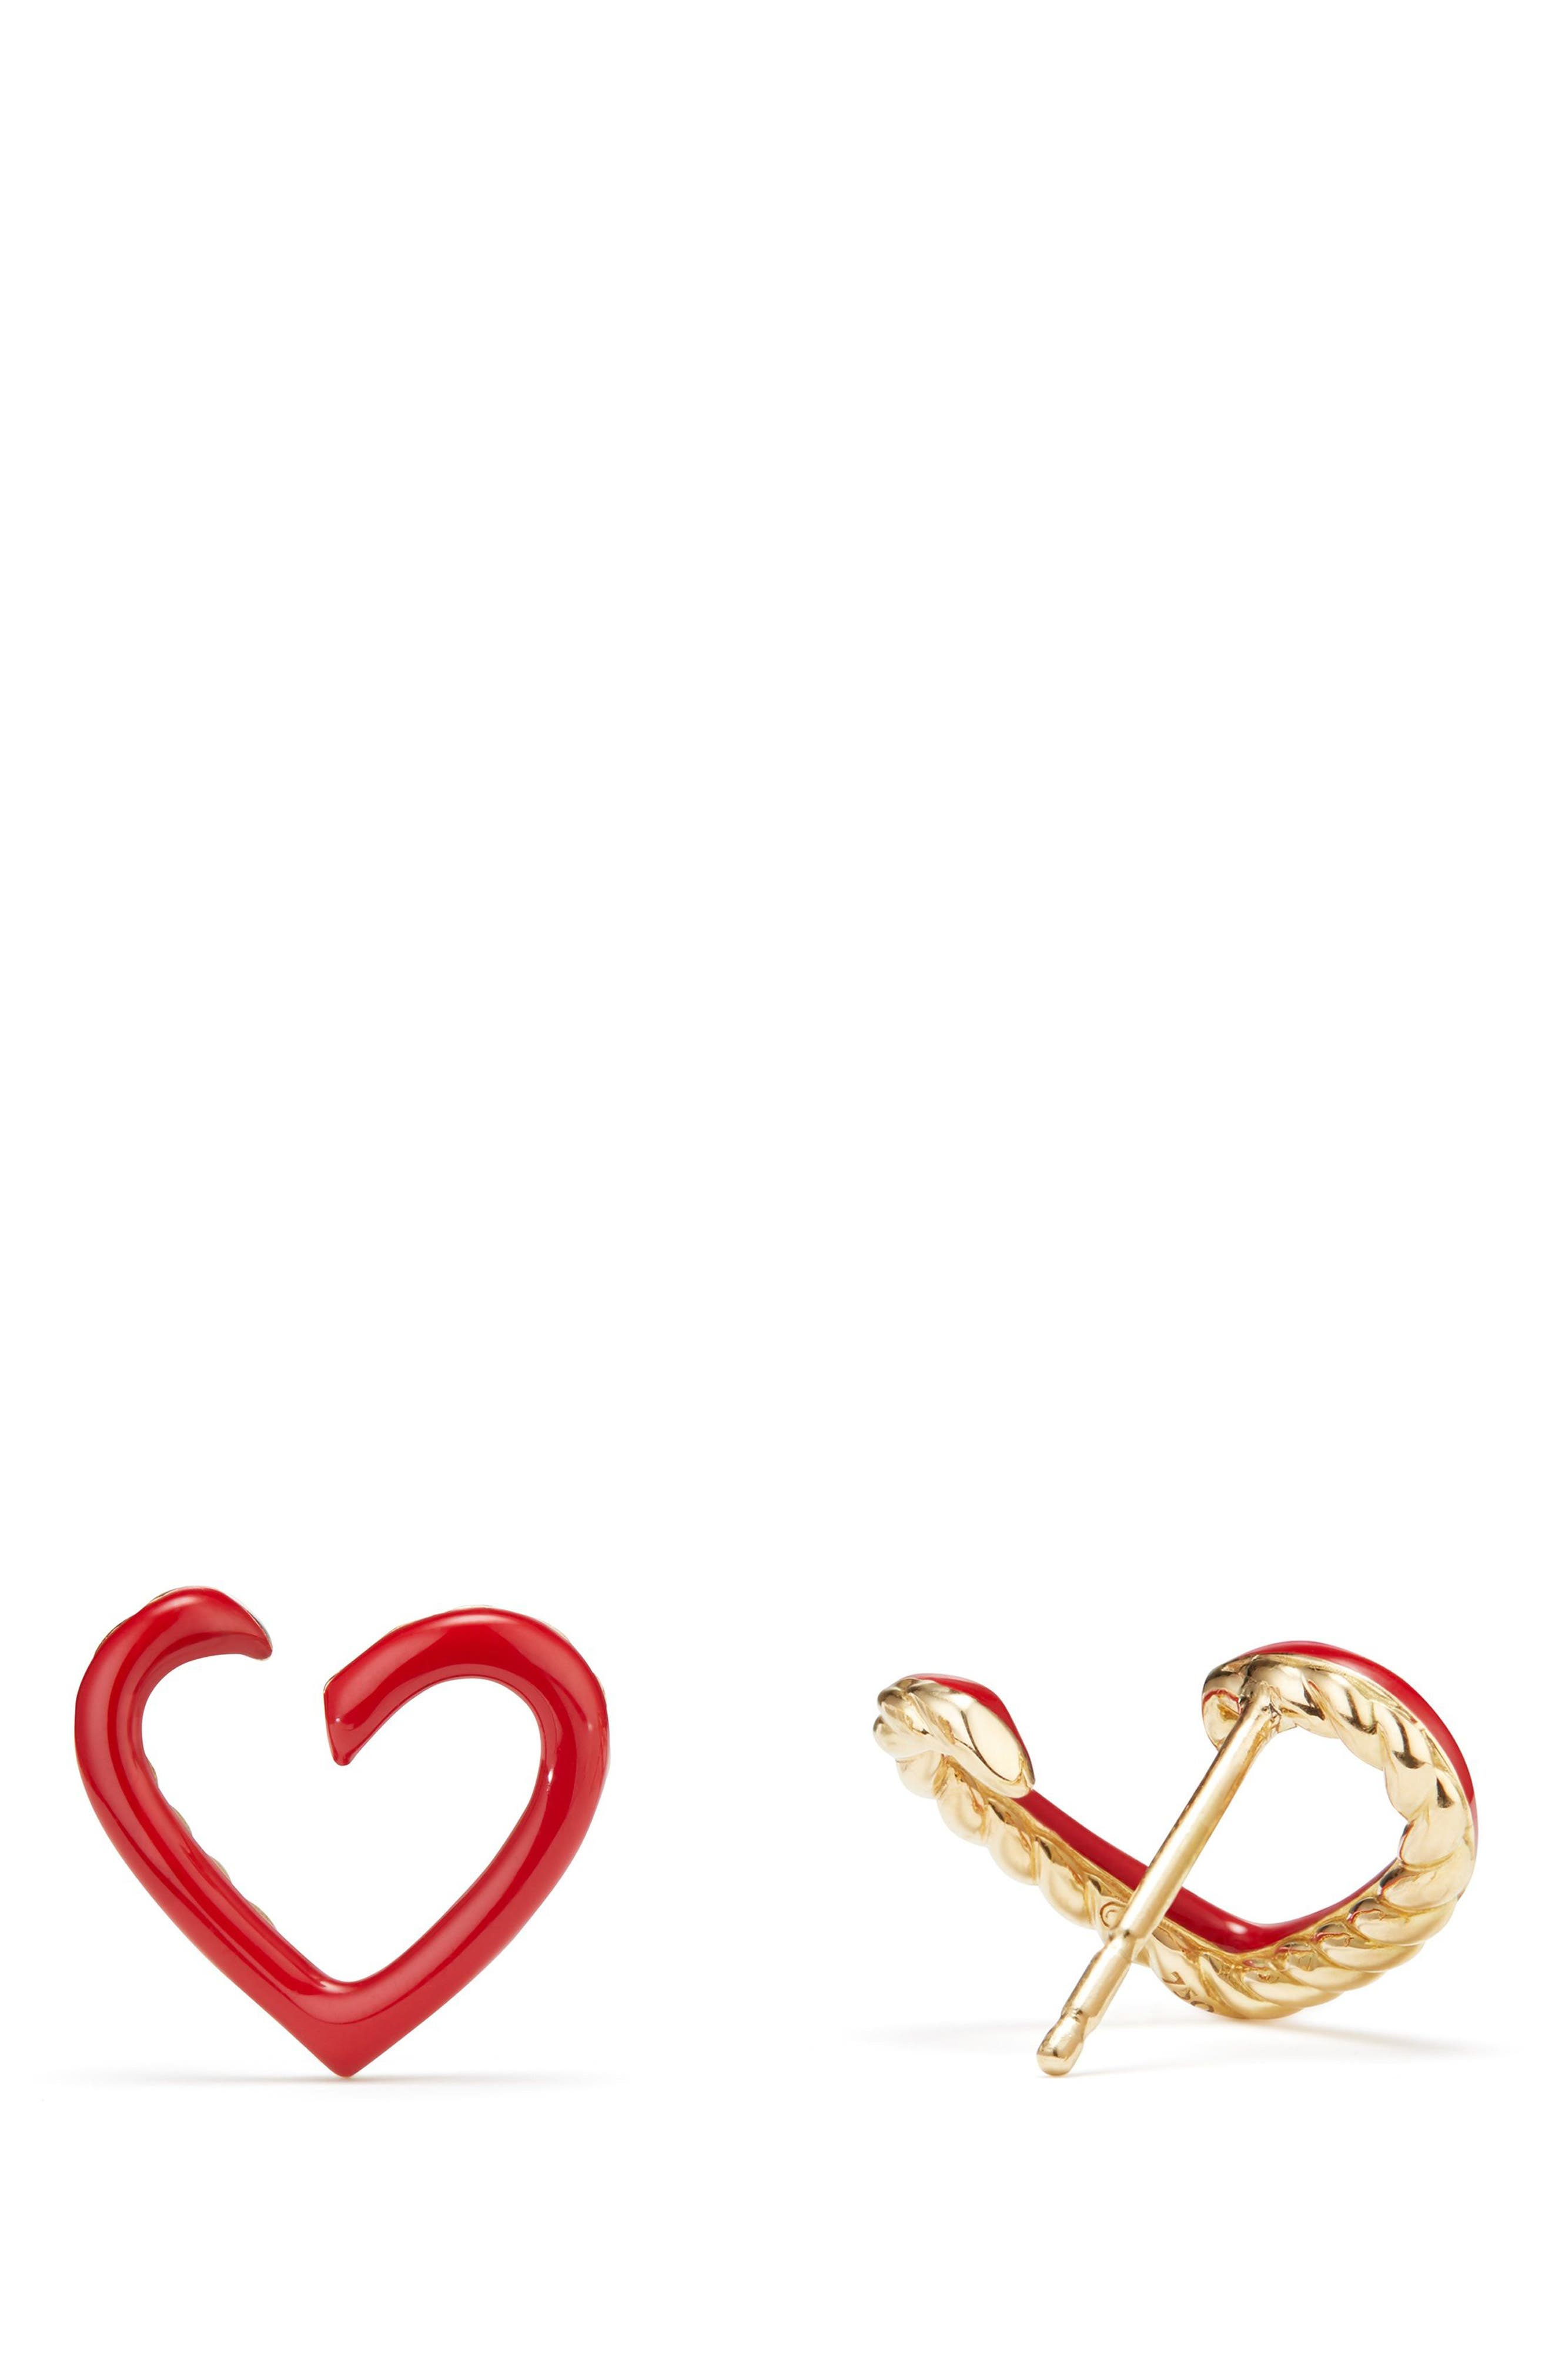 Cable Heart Earrings in Red Enamel and 18K Gold,                             Alternate thumbnail 2, color,                             Gold/ Red